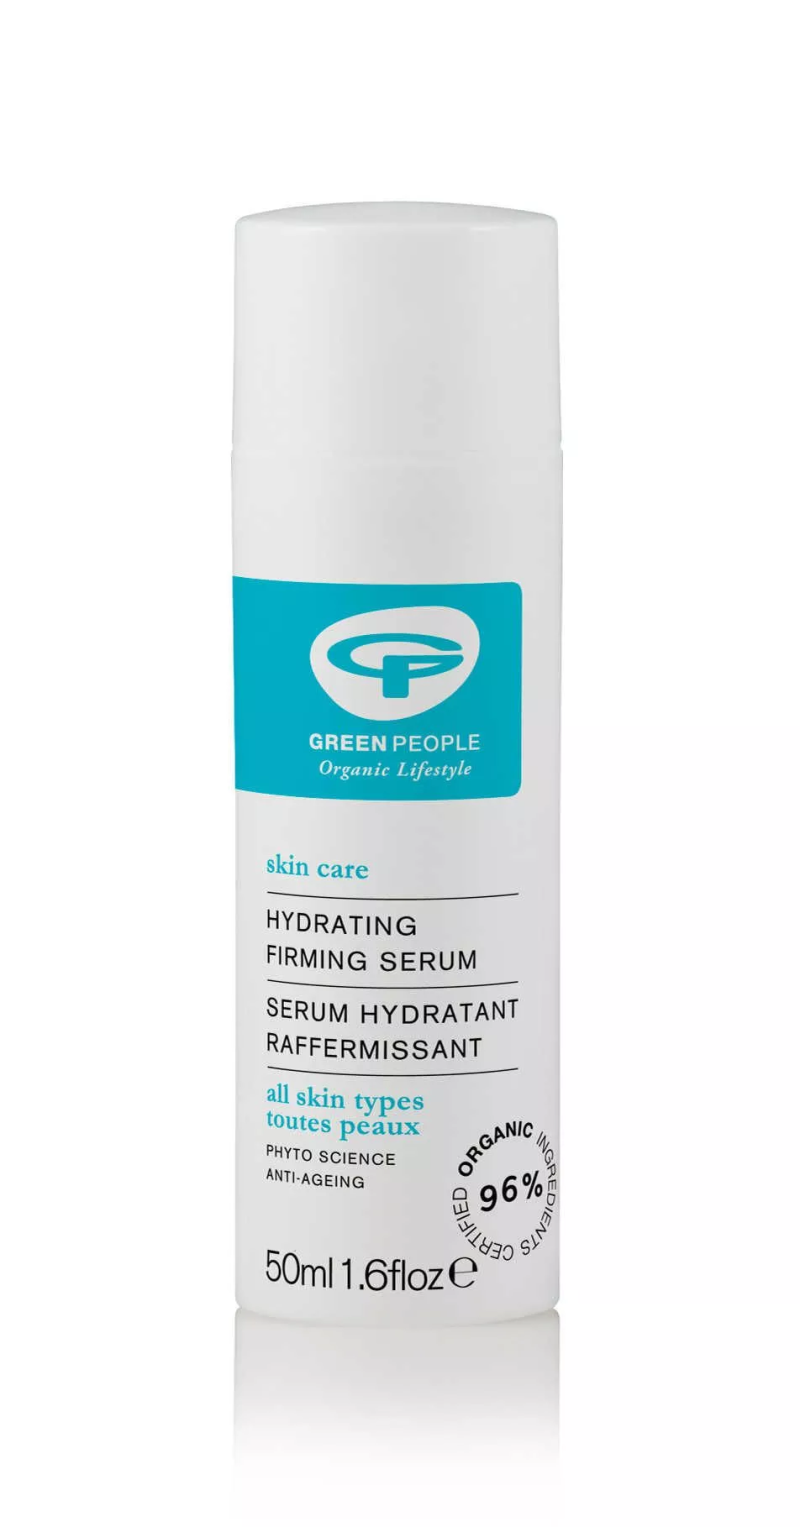 Green People Hydrating Firming Serum 50ml